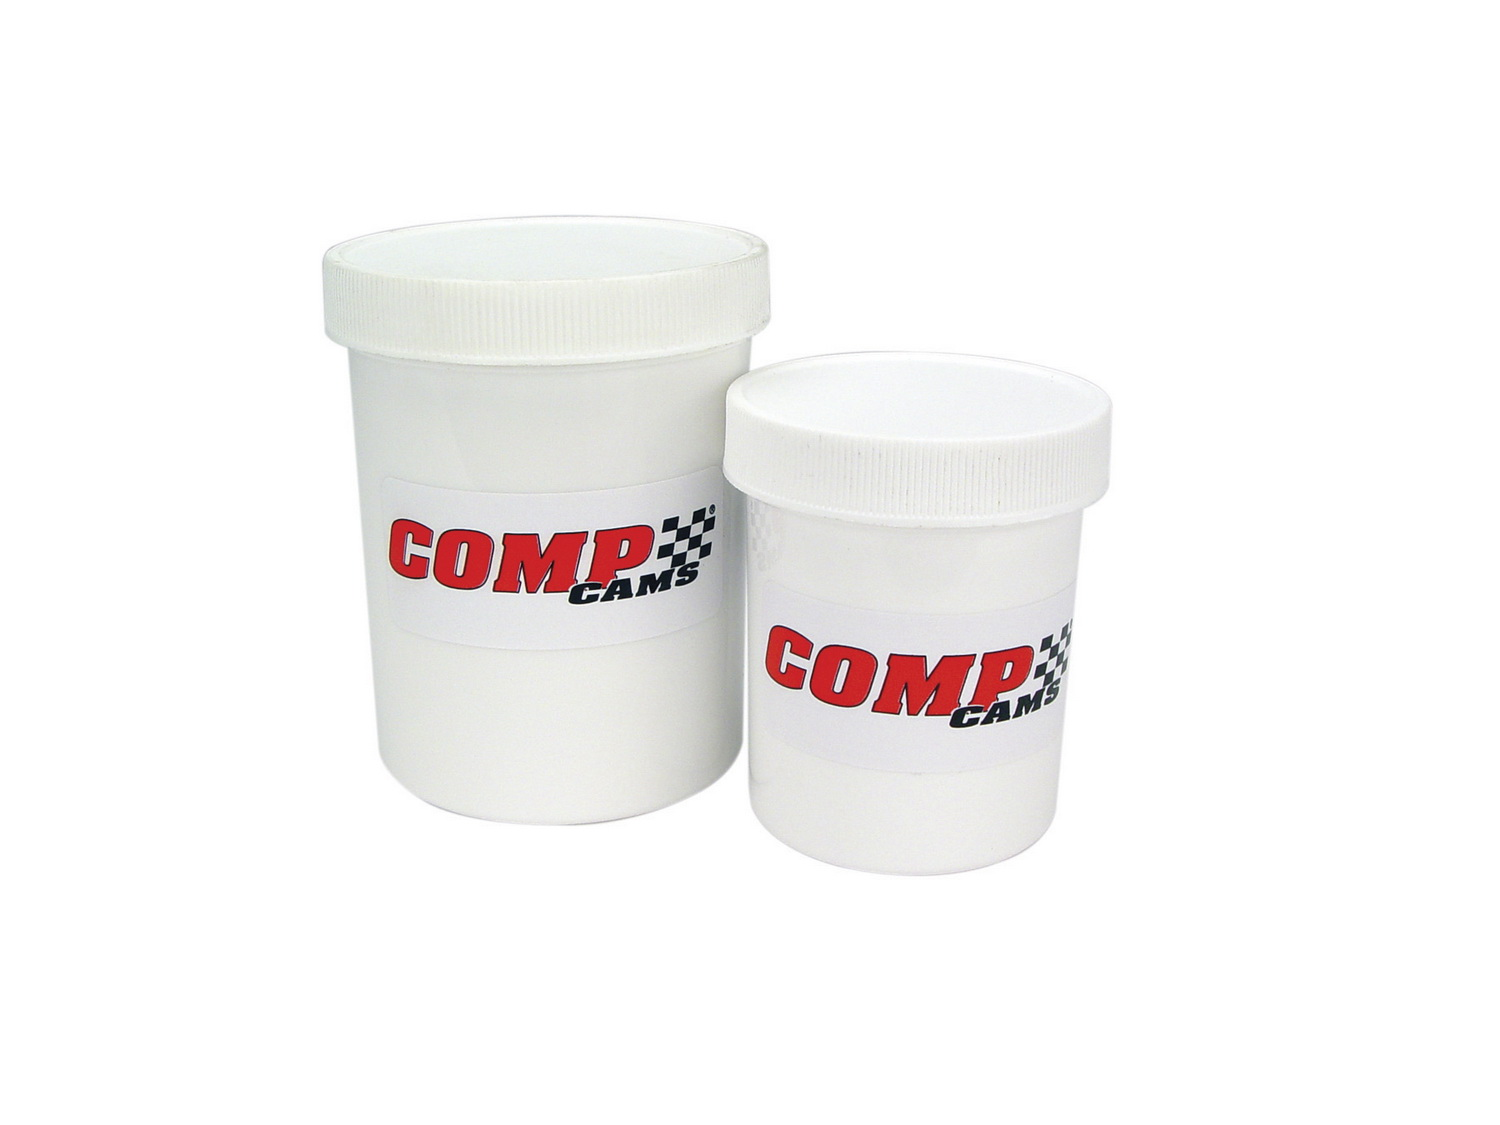 102 Competition Cams Assembly Lube 4 Ounce Jar